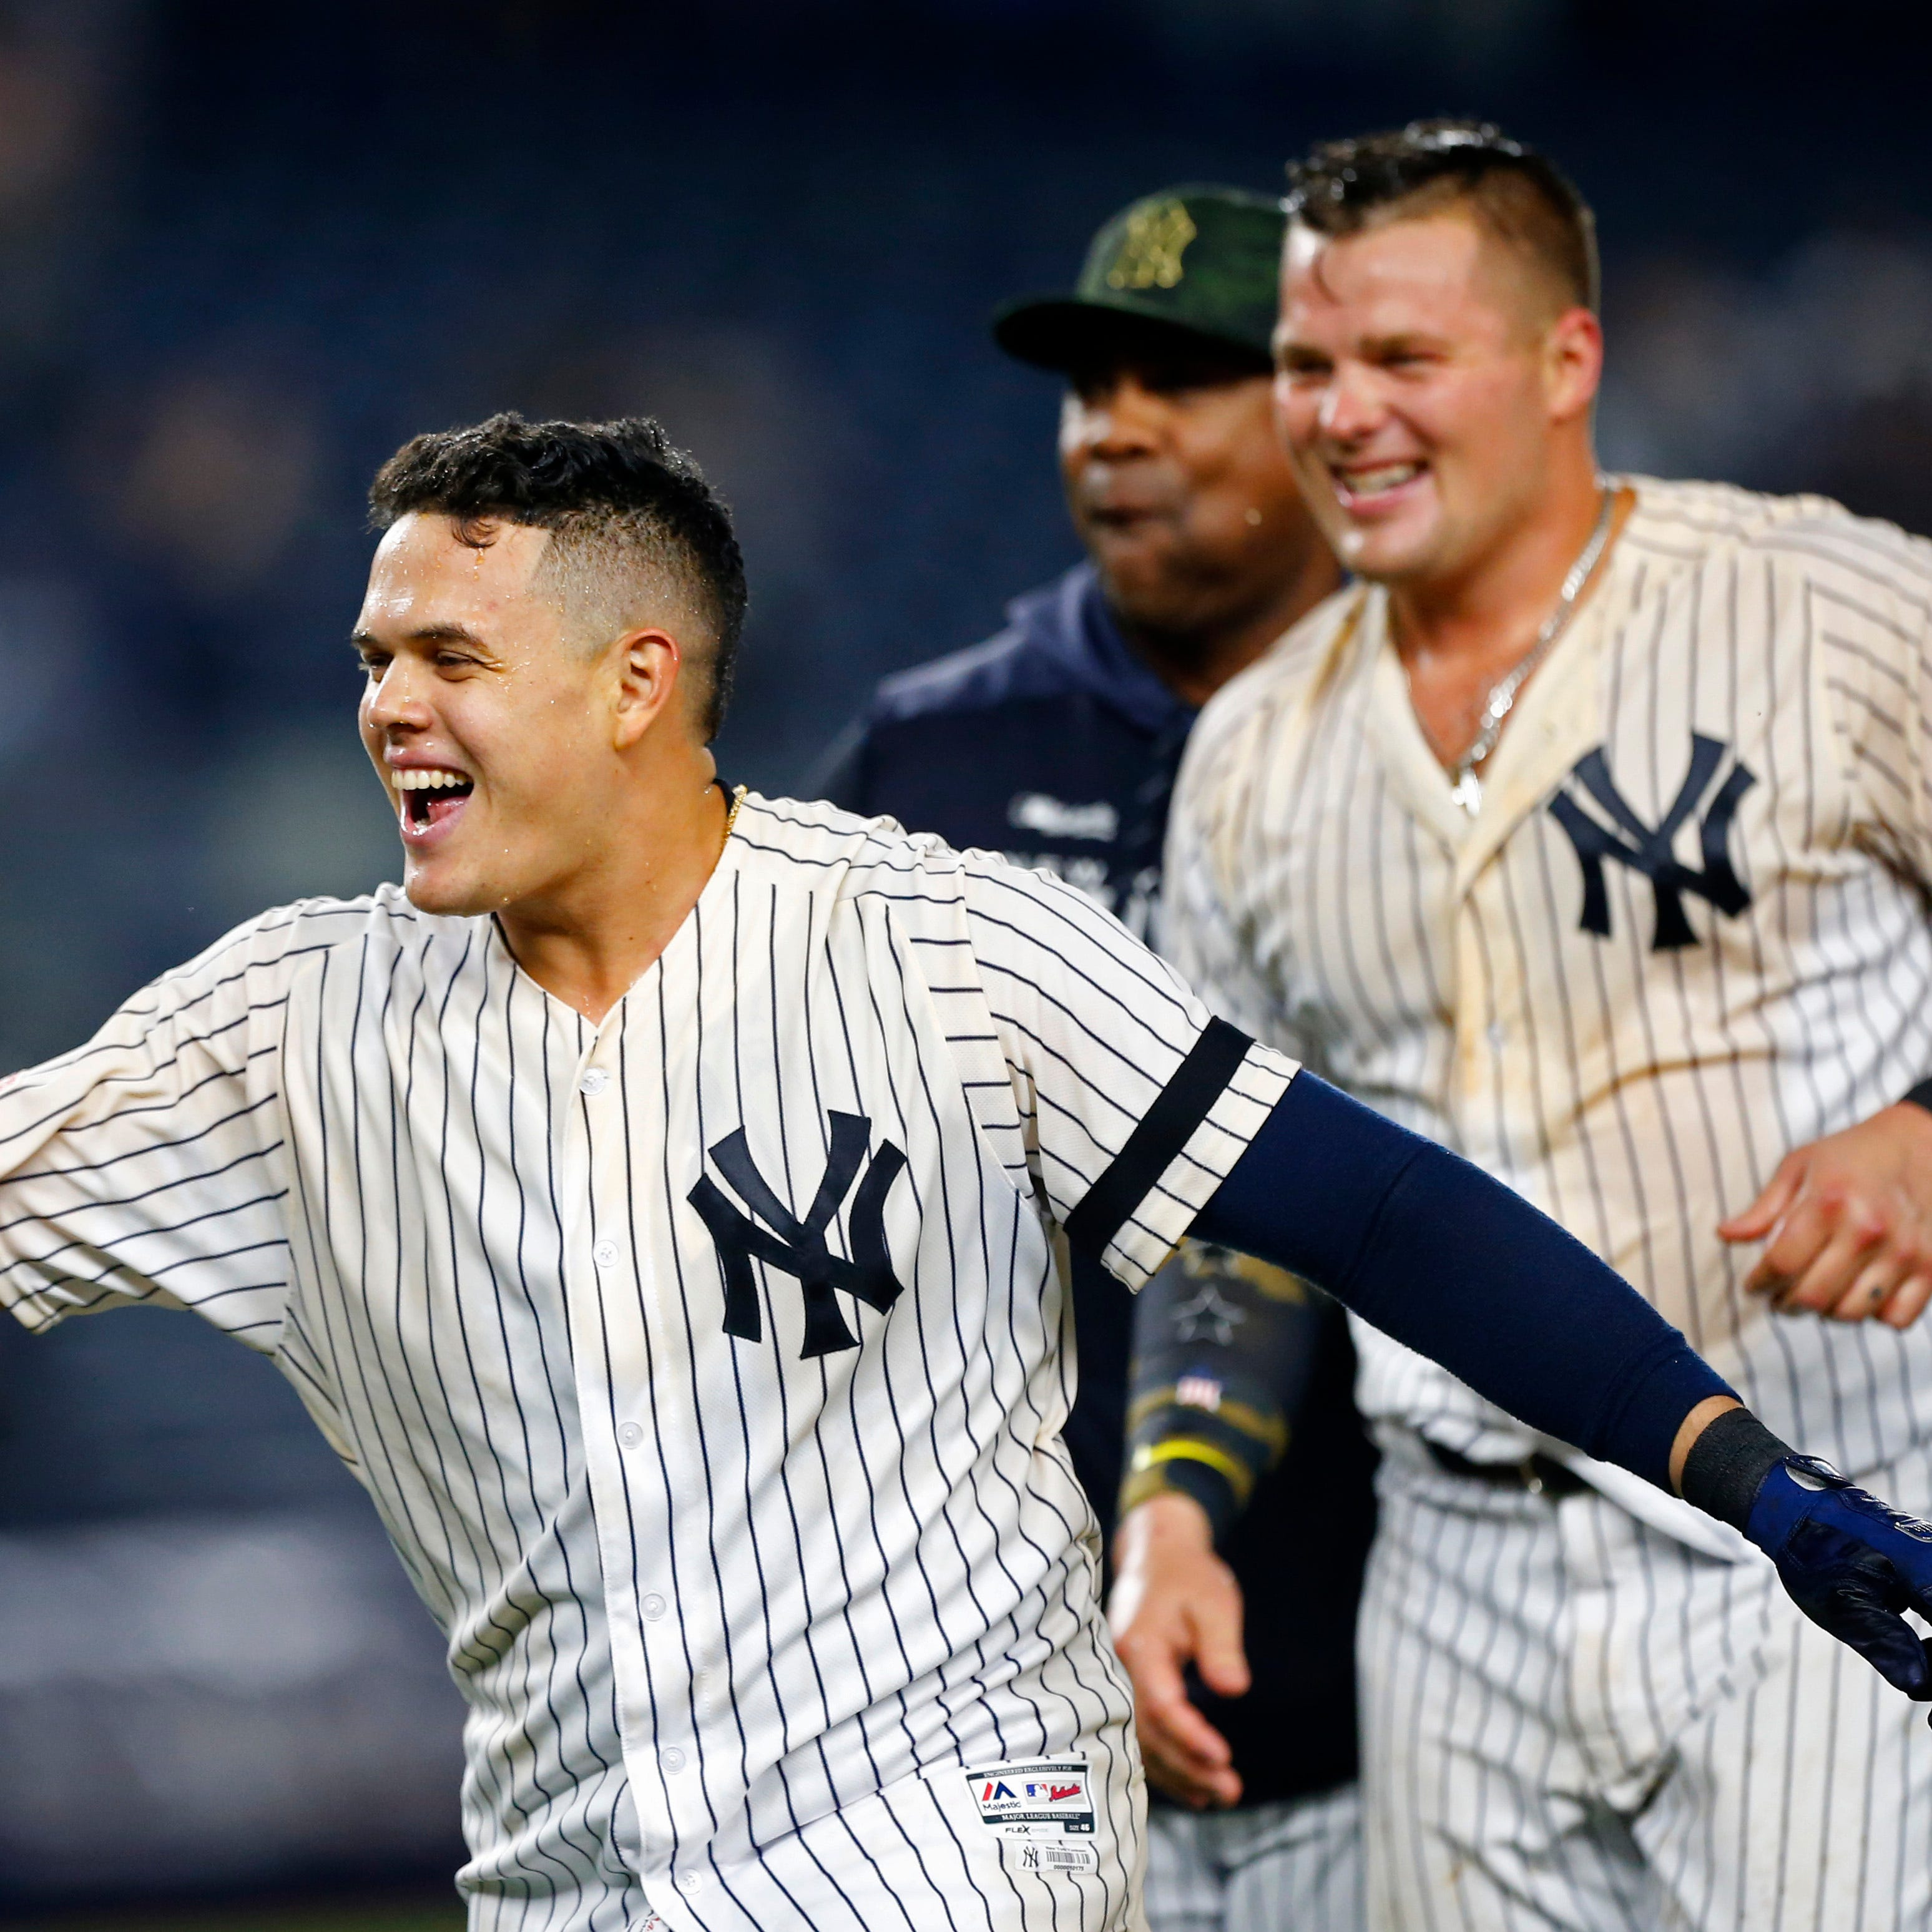 Yankees rally for walk-off win on Gio Urshela RBI to beat Rays, take over first place